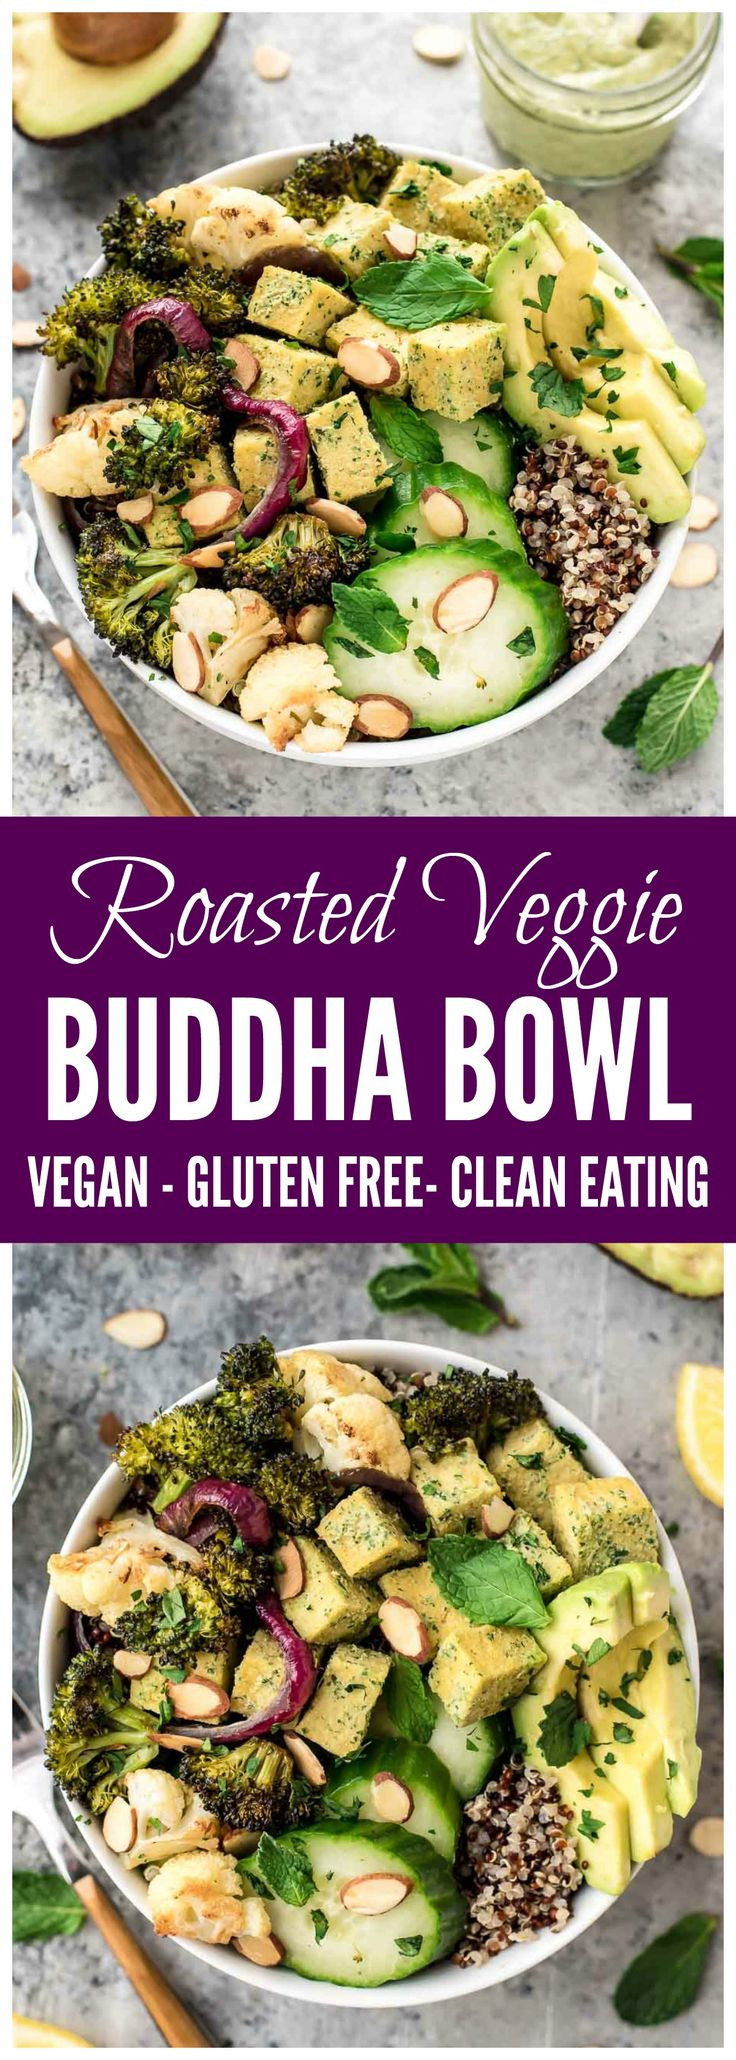 Roasted Veggie Buddha Bowl! A healthy lunch or dinner that's clean eating, vegan, and gluten free. Quinoa, the BEST tofu, avocado, roasted broccoli in creamy lemon tahini dressing. Get the recipe at www.wellplated.com @wellplated